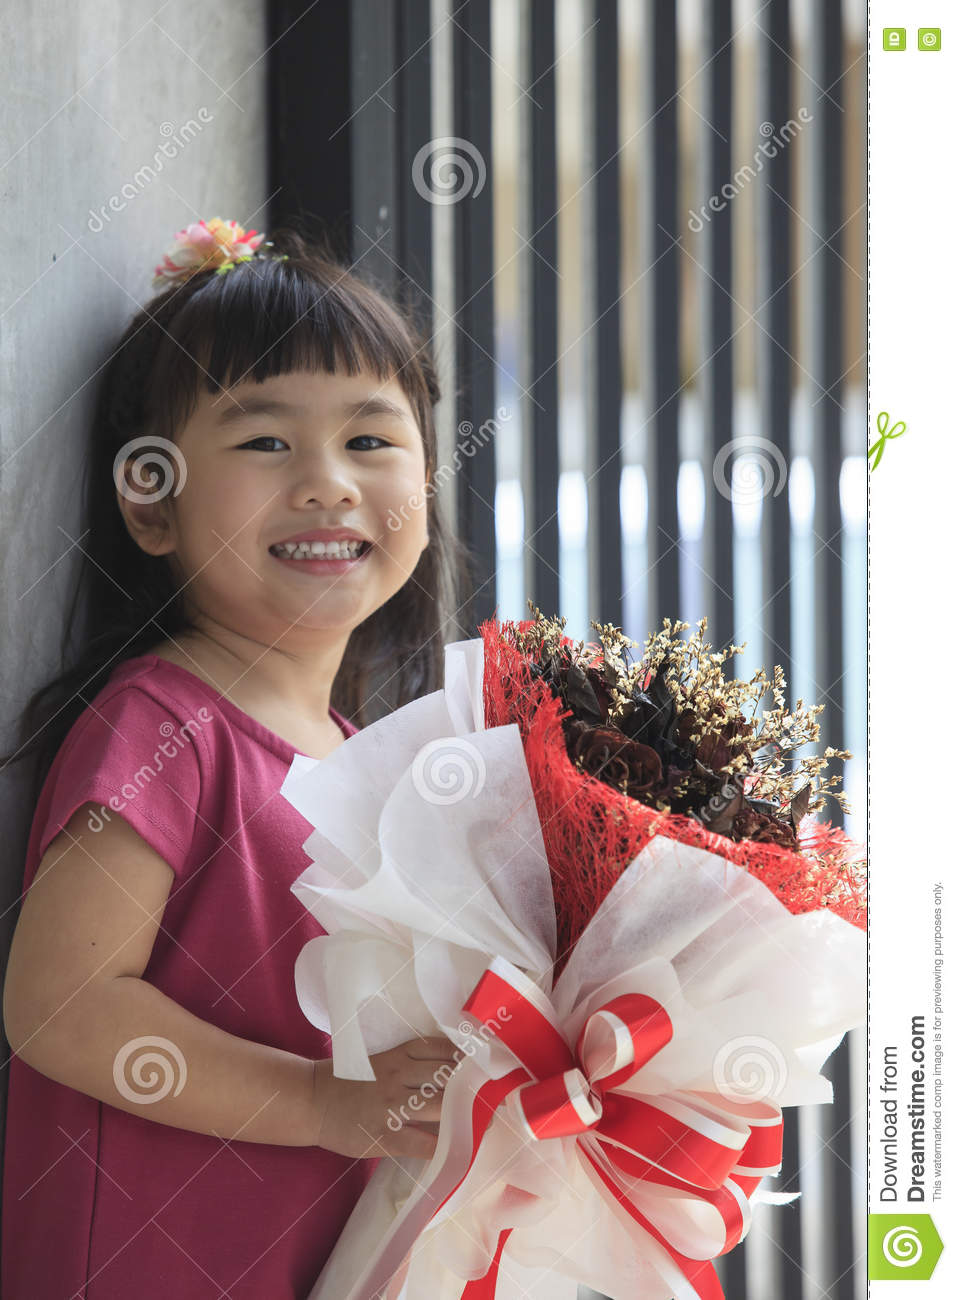 Toothy smiling face of asian kid happiness emotion and dry flowe royalty free stock photo izmirmasajfo